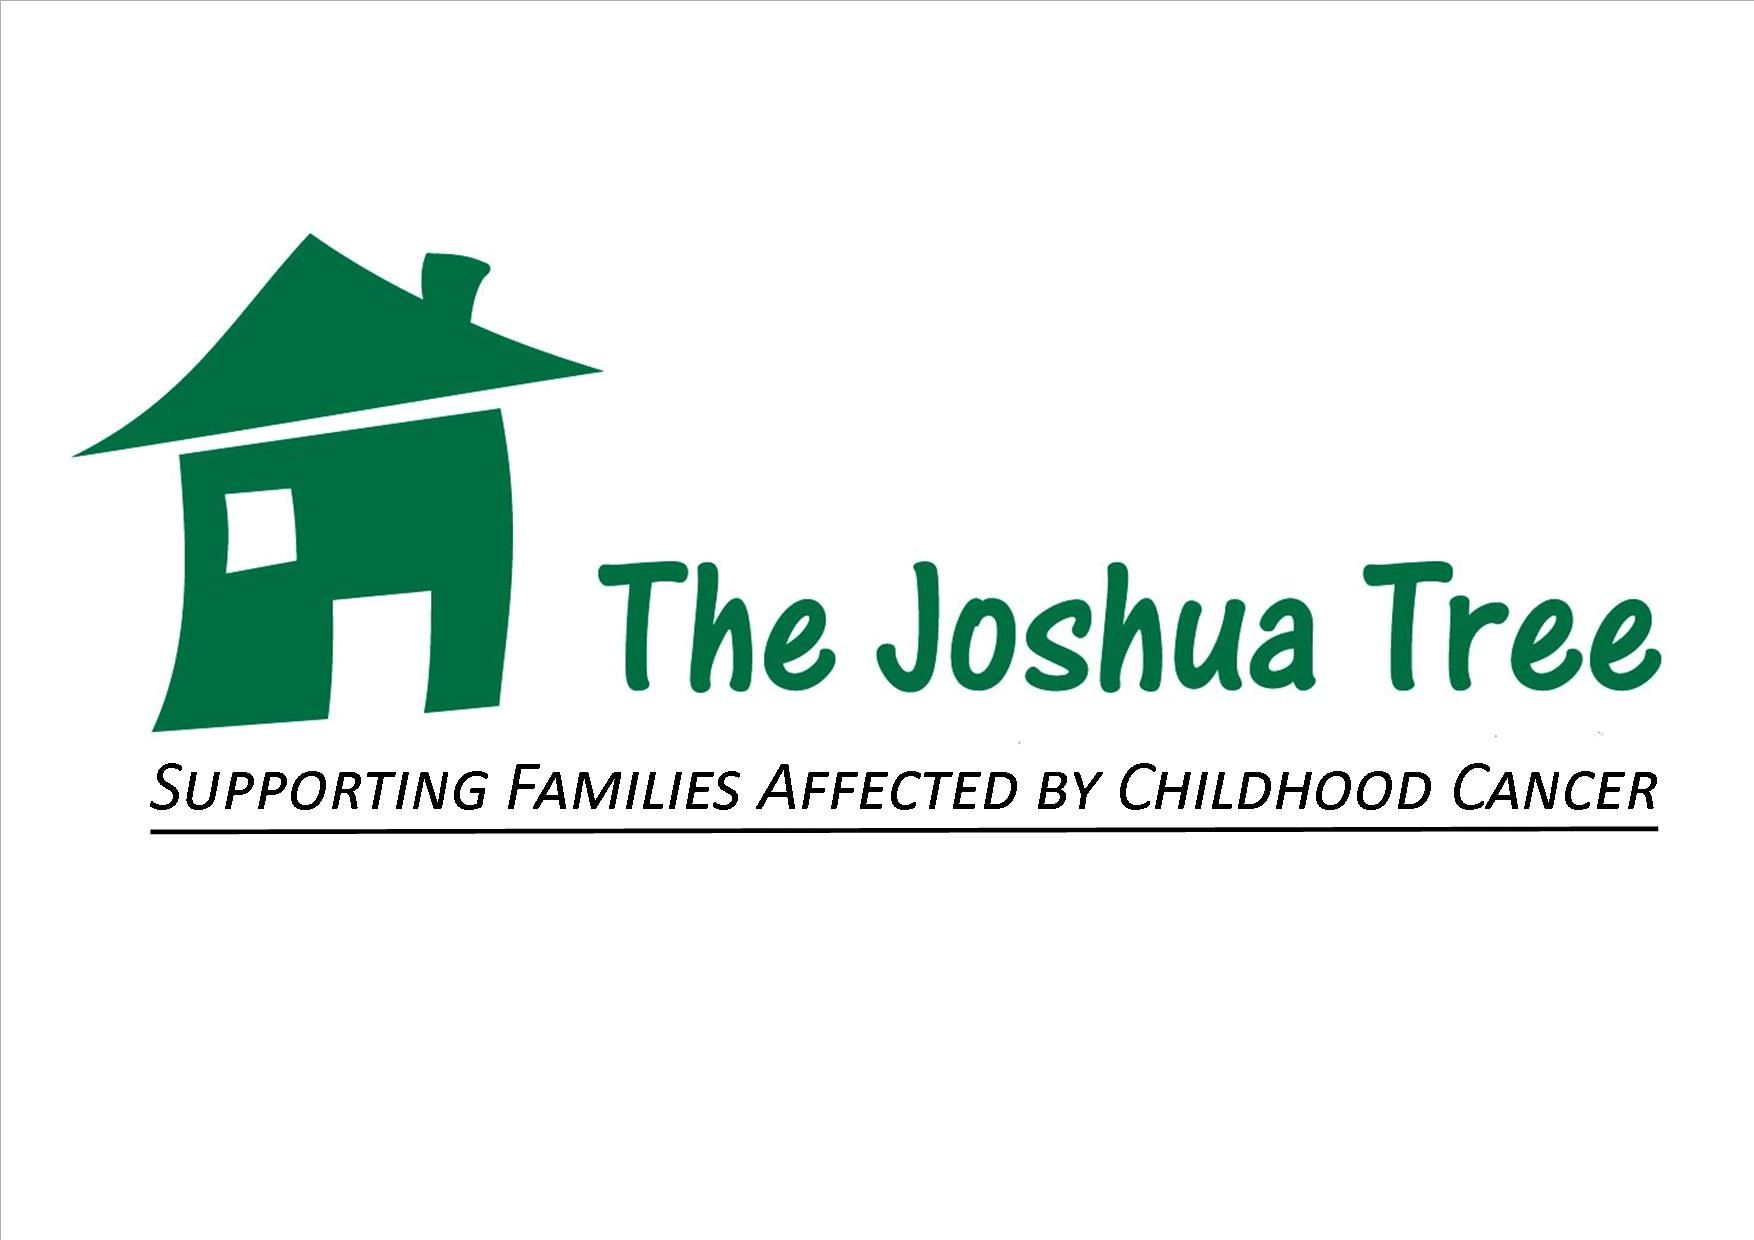 The Joshua Tree Foundation